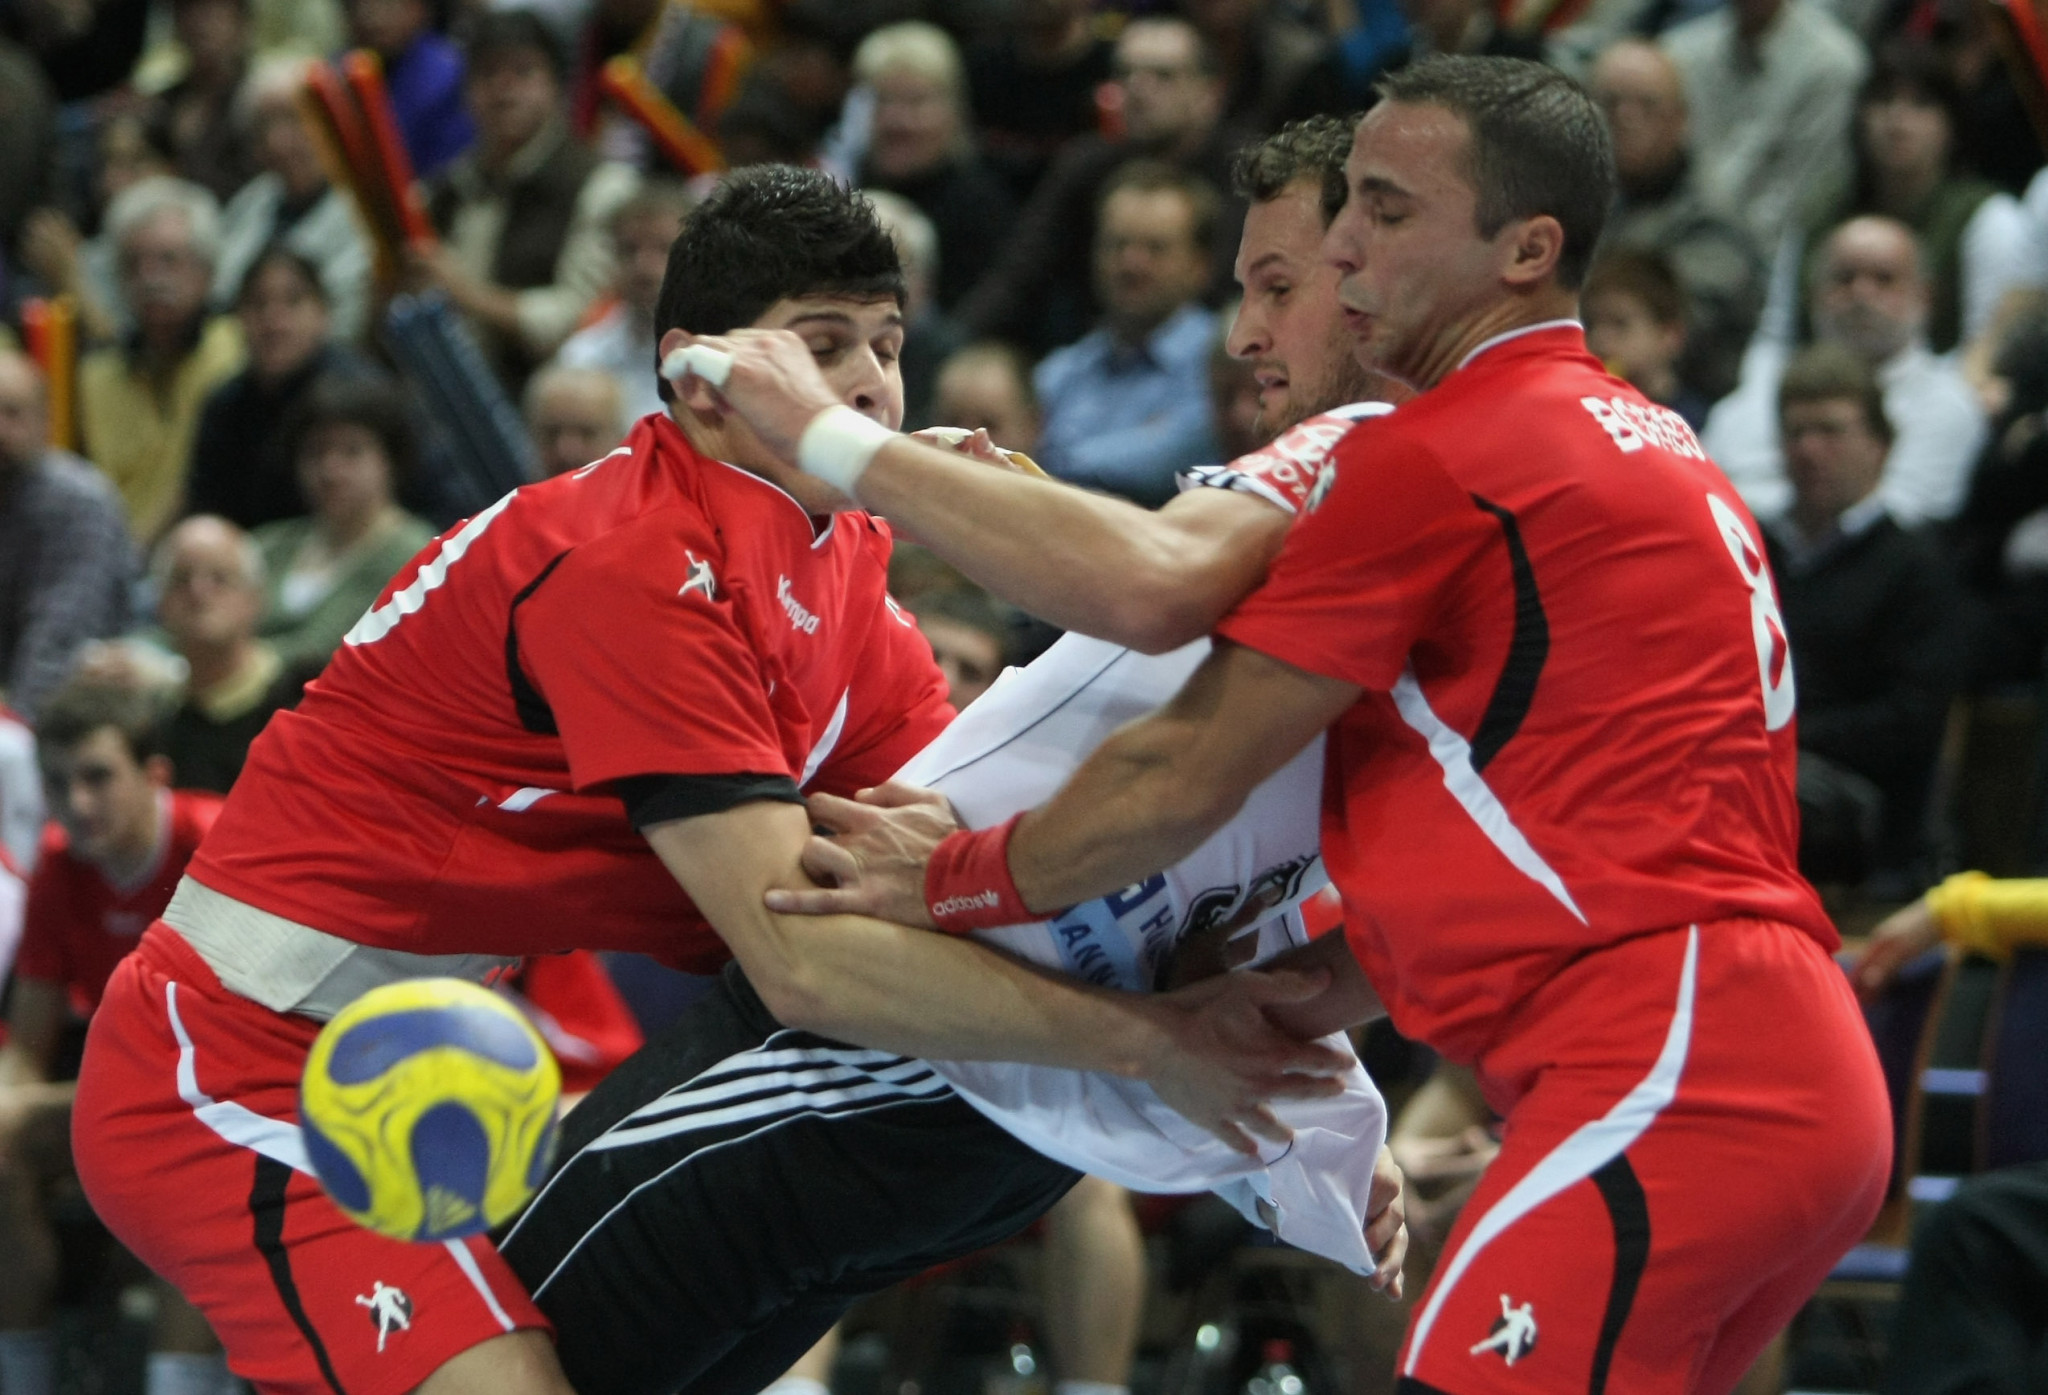 Absence of former champions leaves field wide open in IHF Emerging Nations Championship